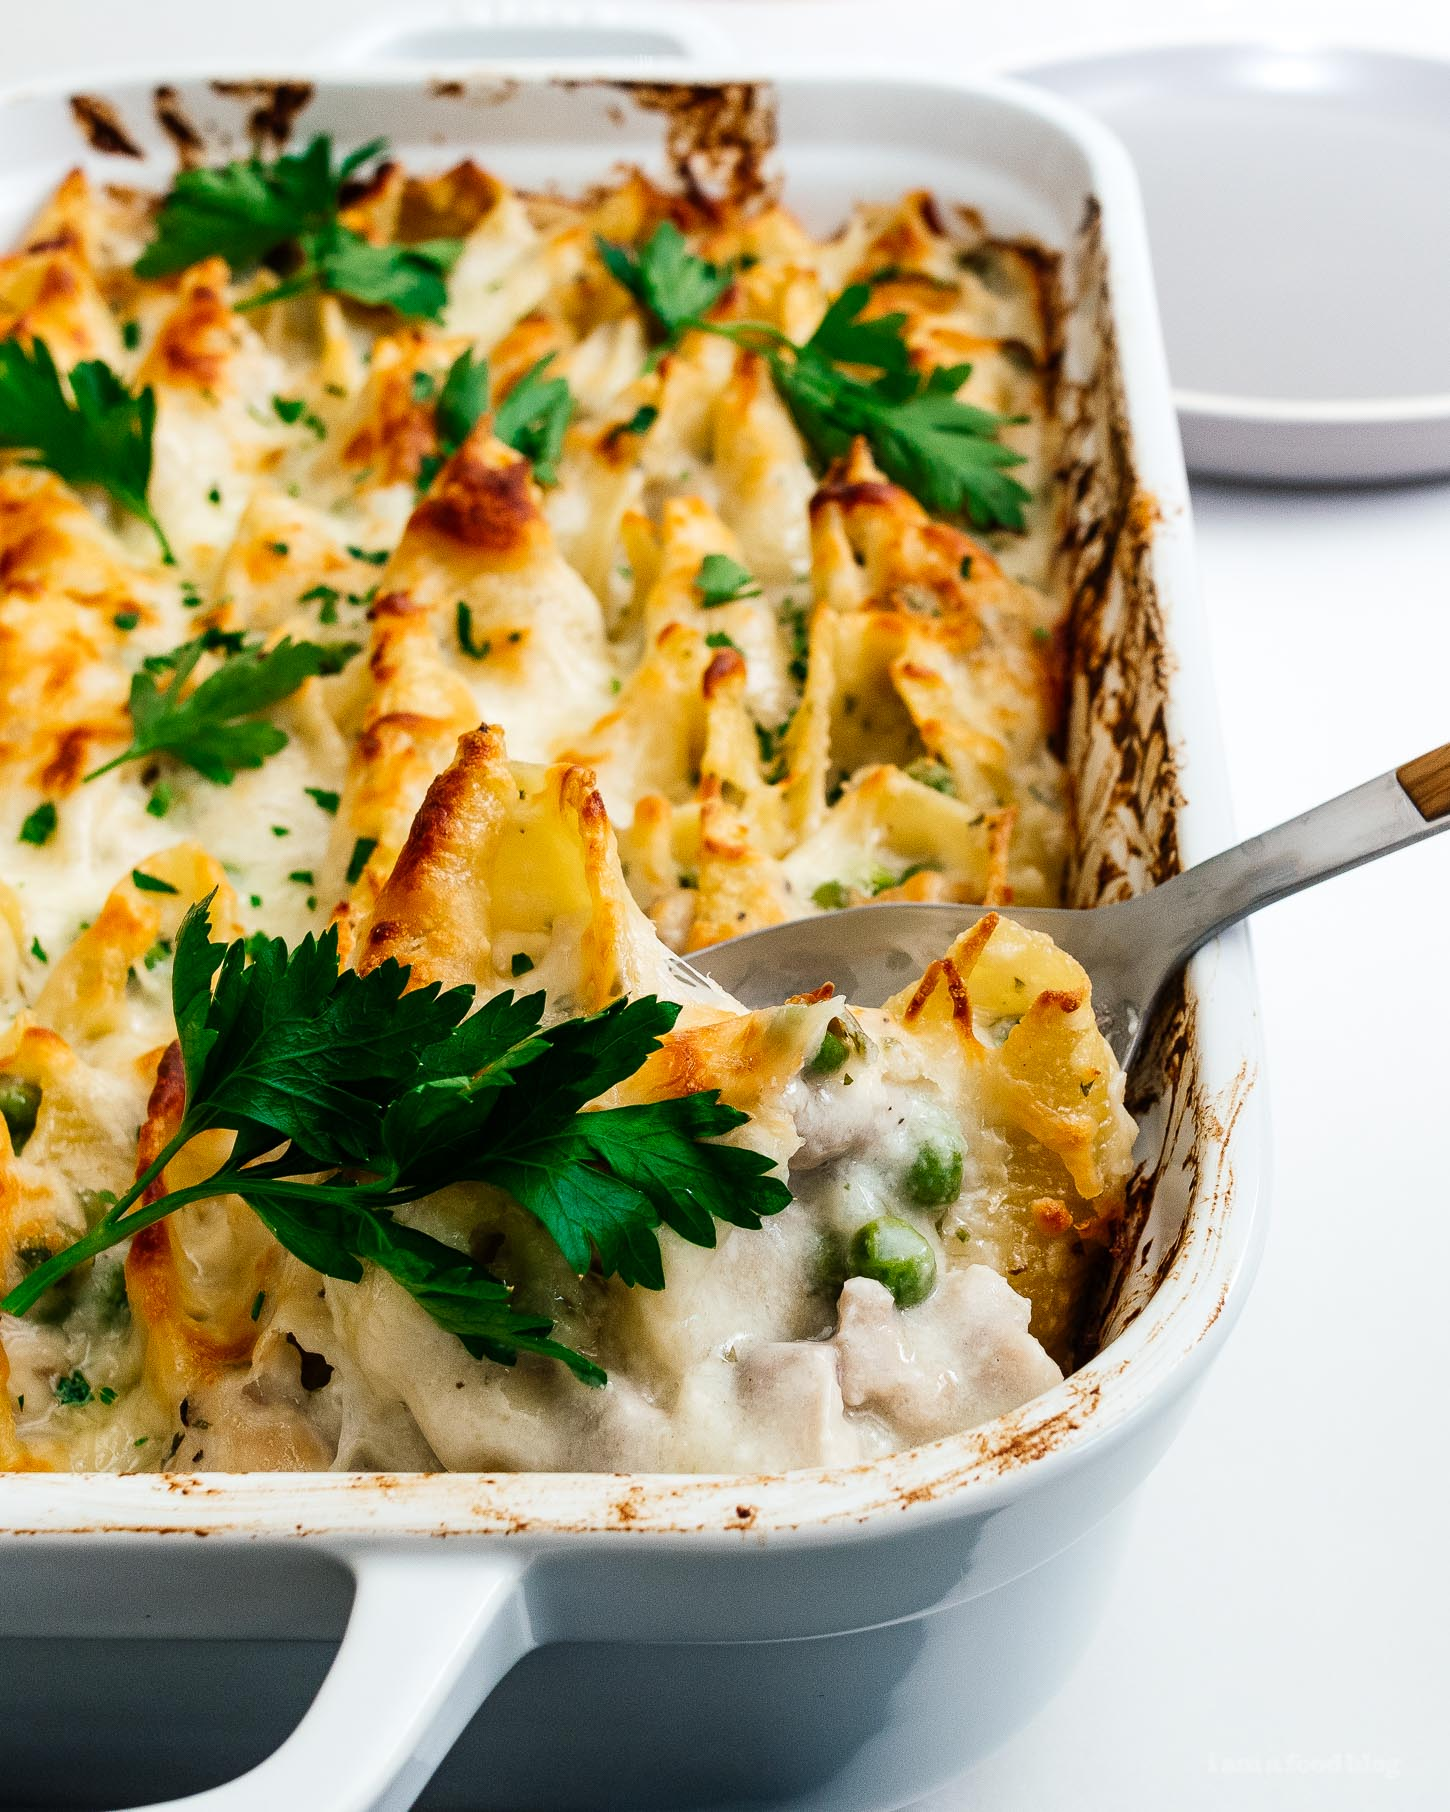 Super warm and comforting oven baked cheesy chicken pot pie stuffed shells #stuffedshells #chicken #chickenpotpie #pasta #noodles #recipe